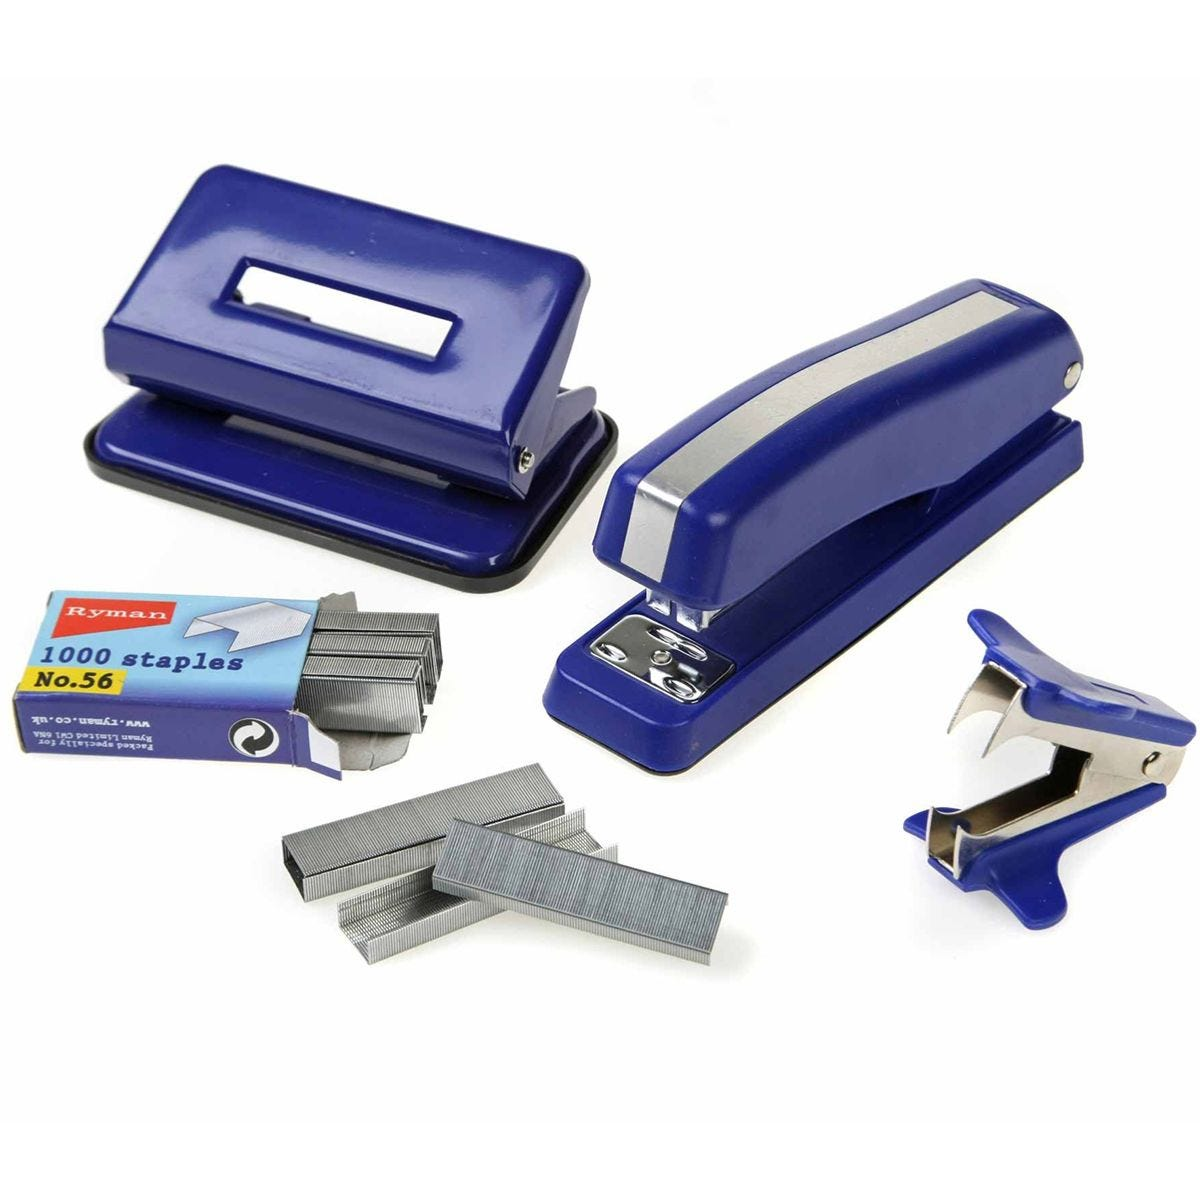 Ryman Desk Top Kit with Stapler & Hole Punch - Blue